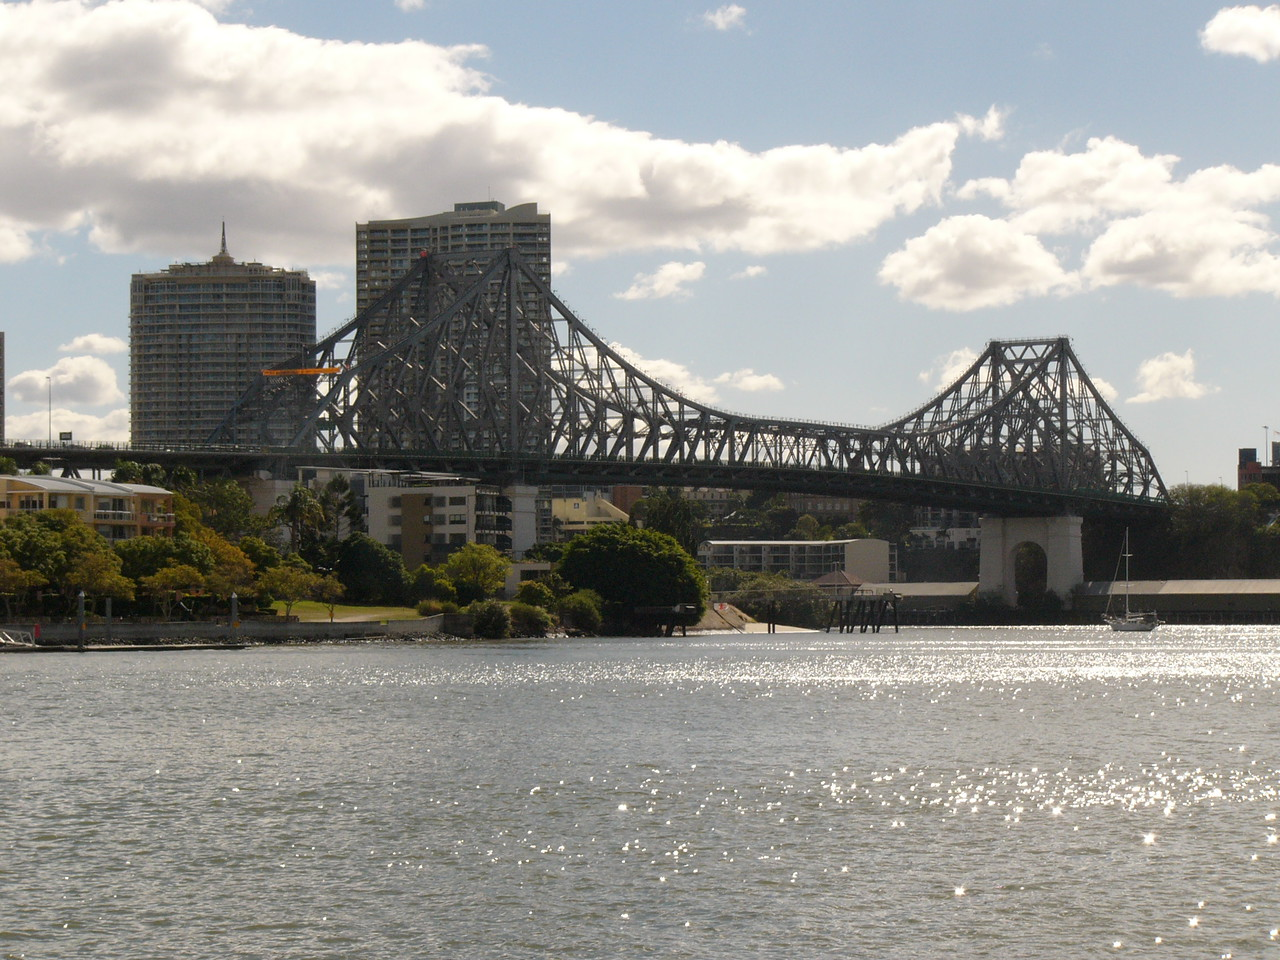 Brisbane river bridge. Shot with FZ10 from a moving catamaran. No image manipulation (yet).